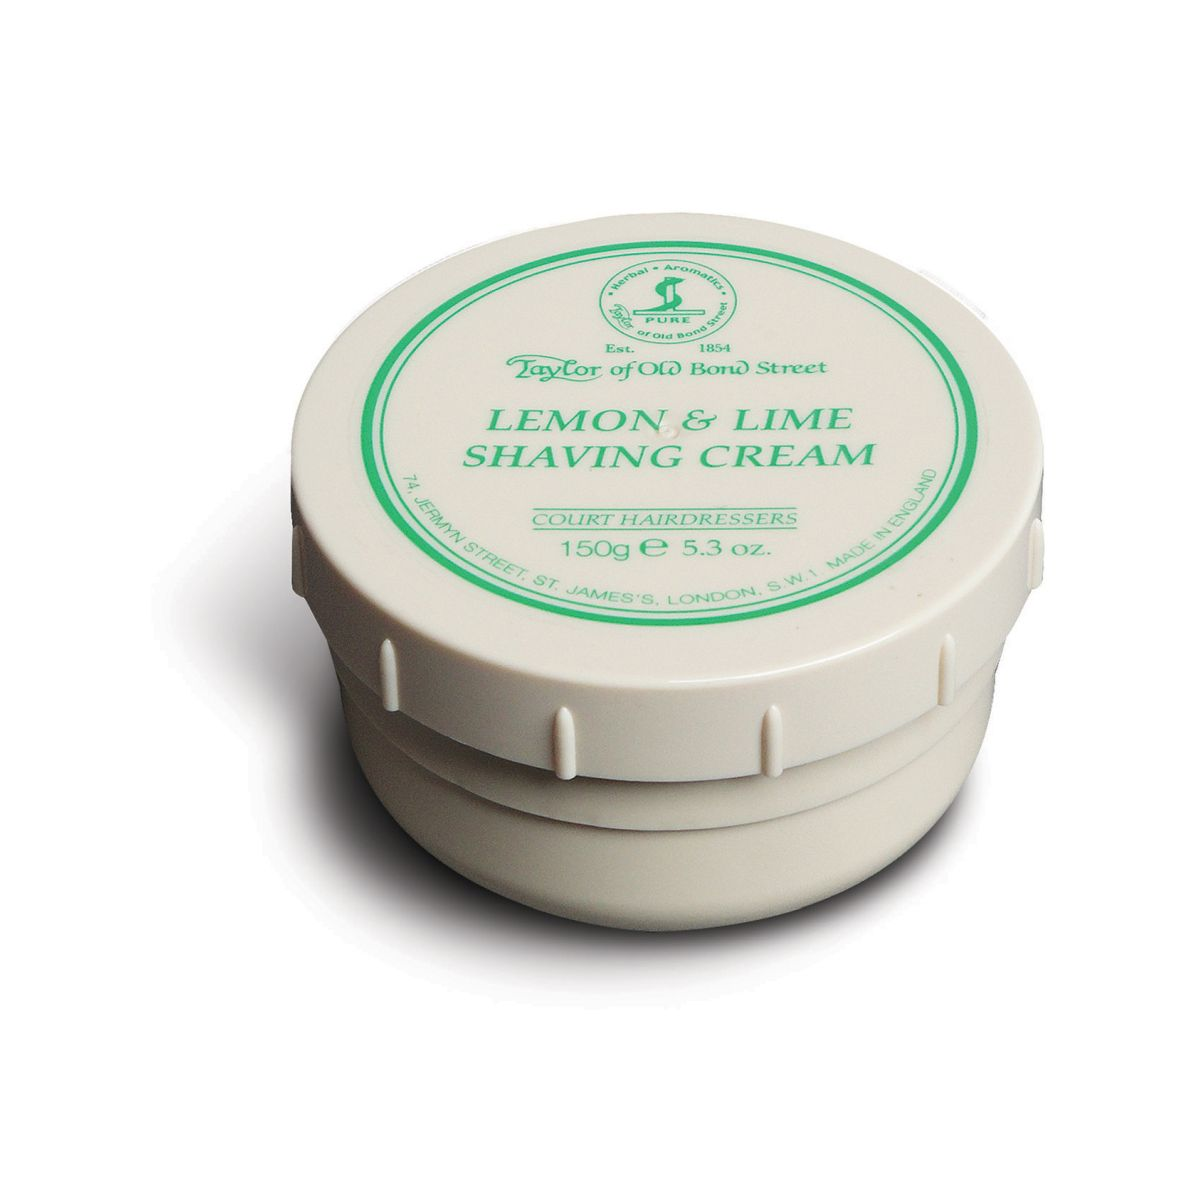 01005 Lemon and Lime - Taylor Of Old Bond Street Lemon & Lime Shaving Cream Bowl 150G - 01005